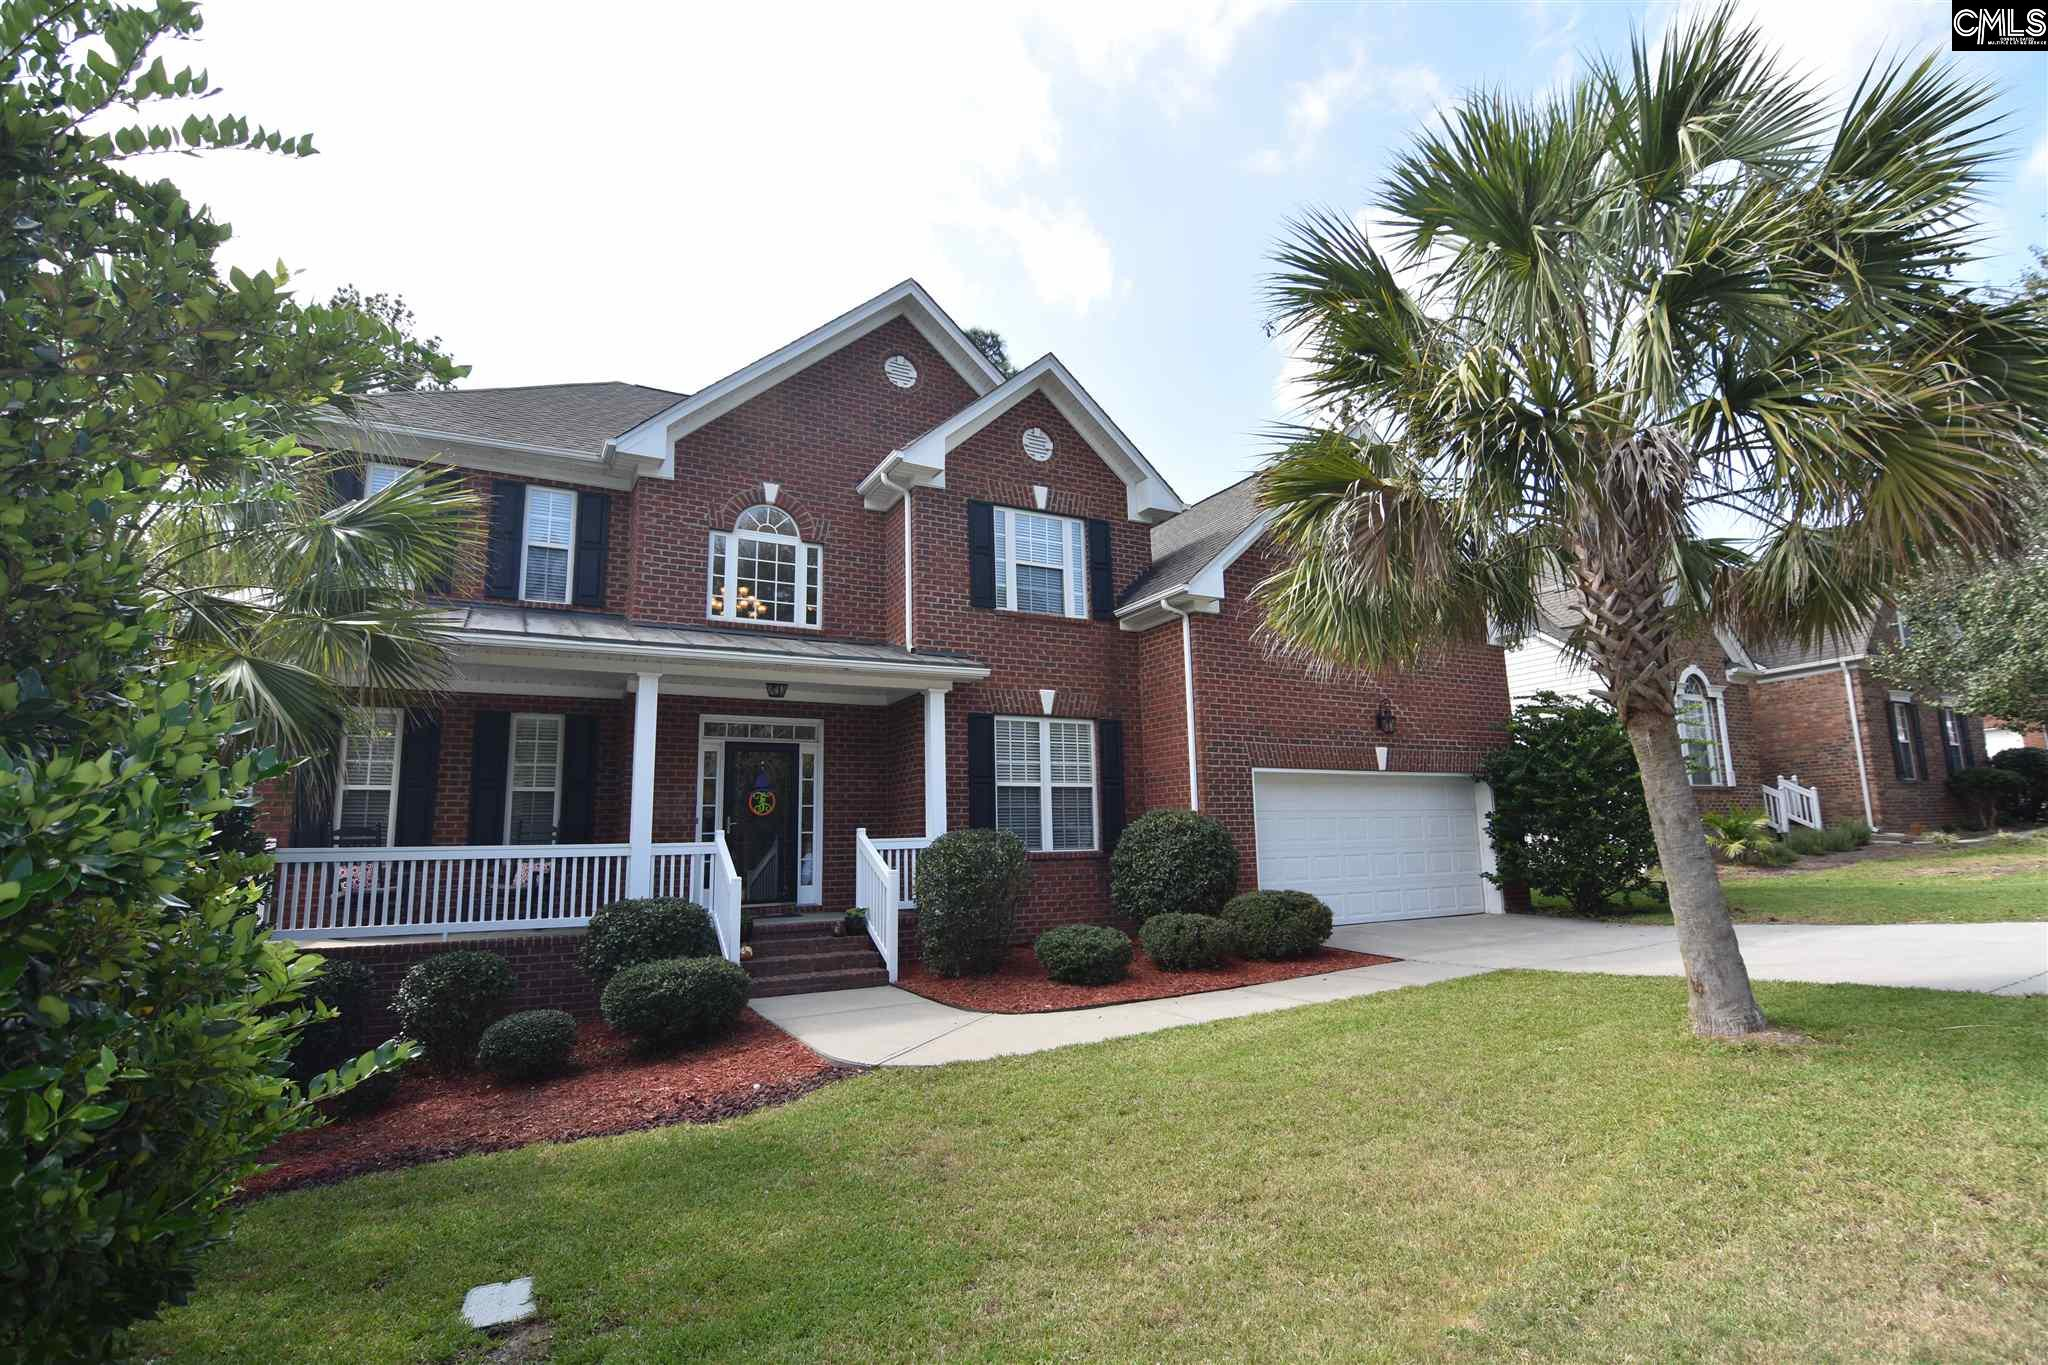 409 Mana Vista Lexington, SC 29072